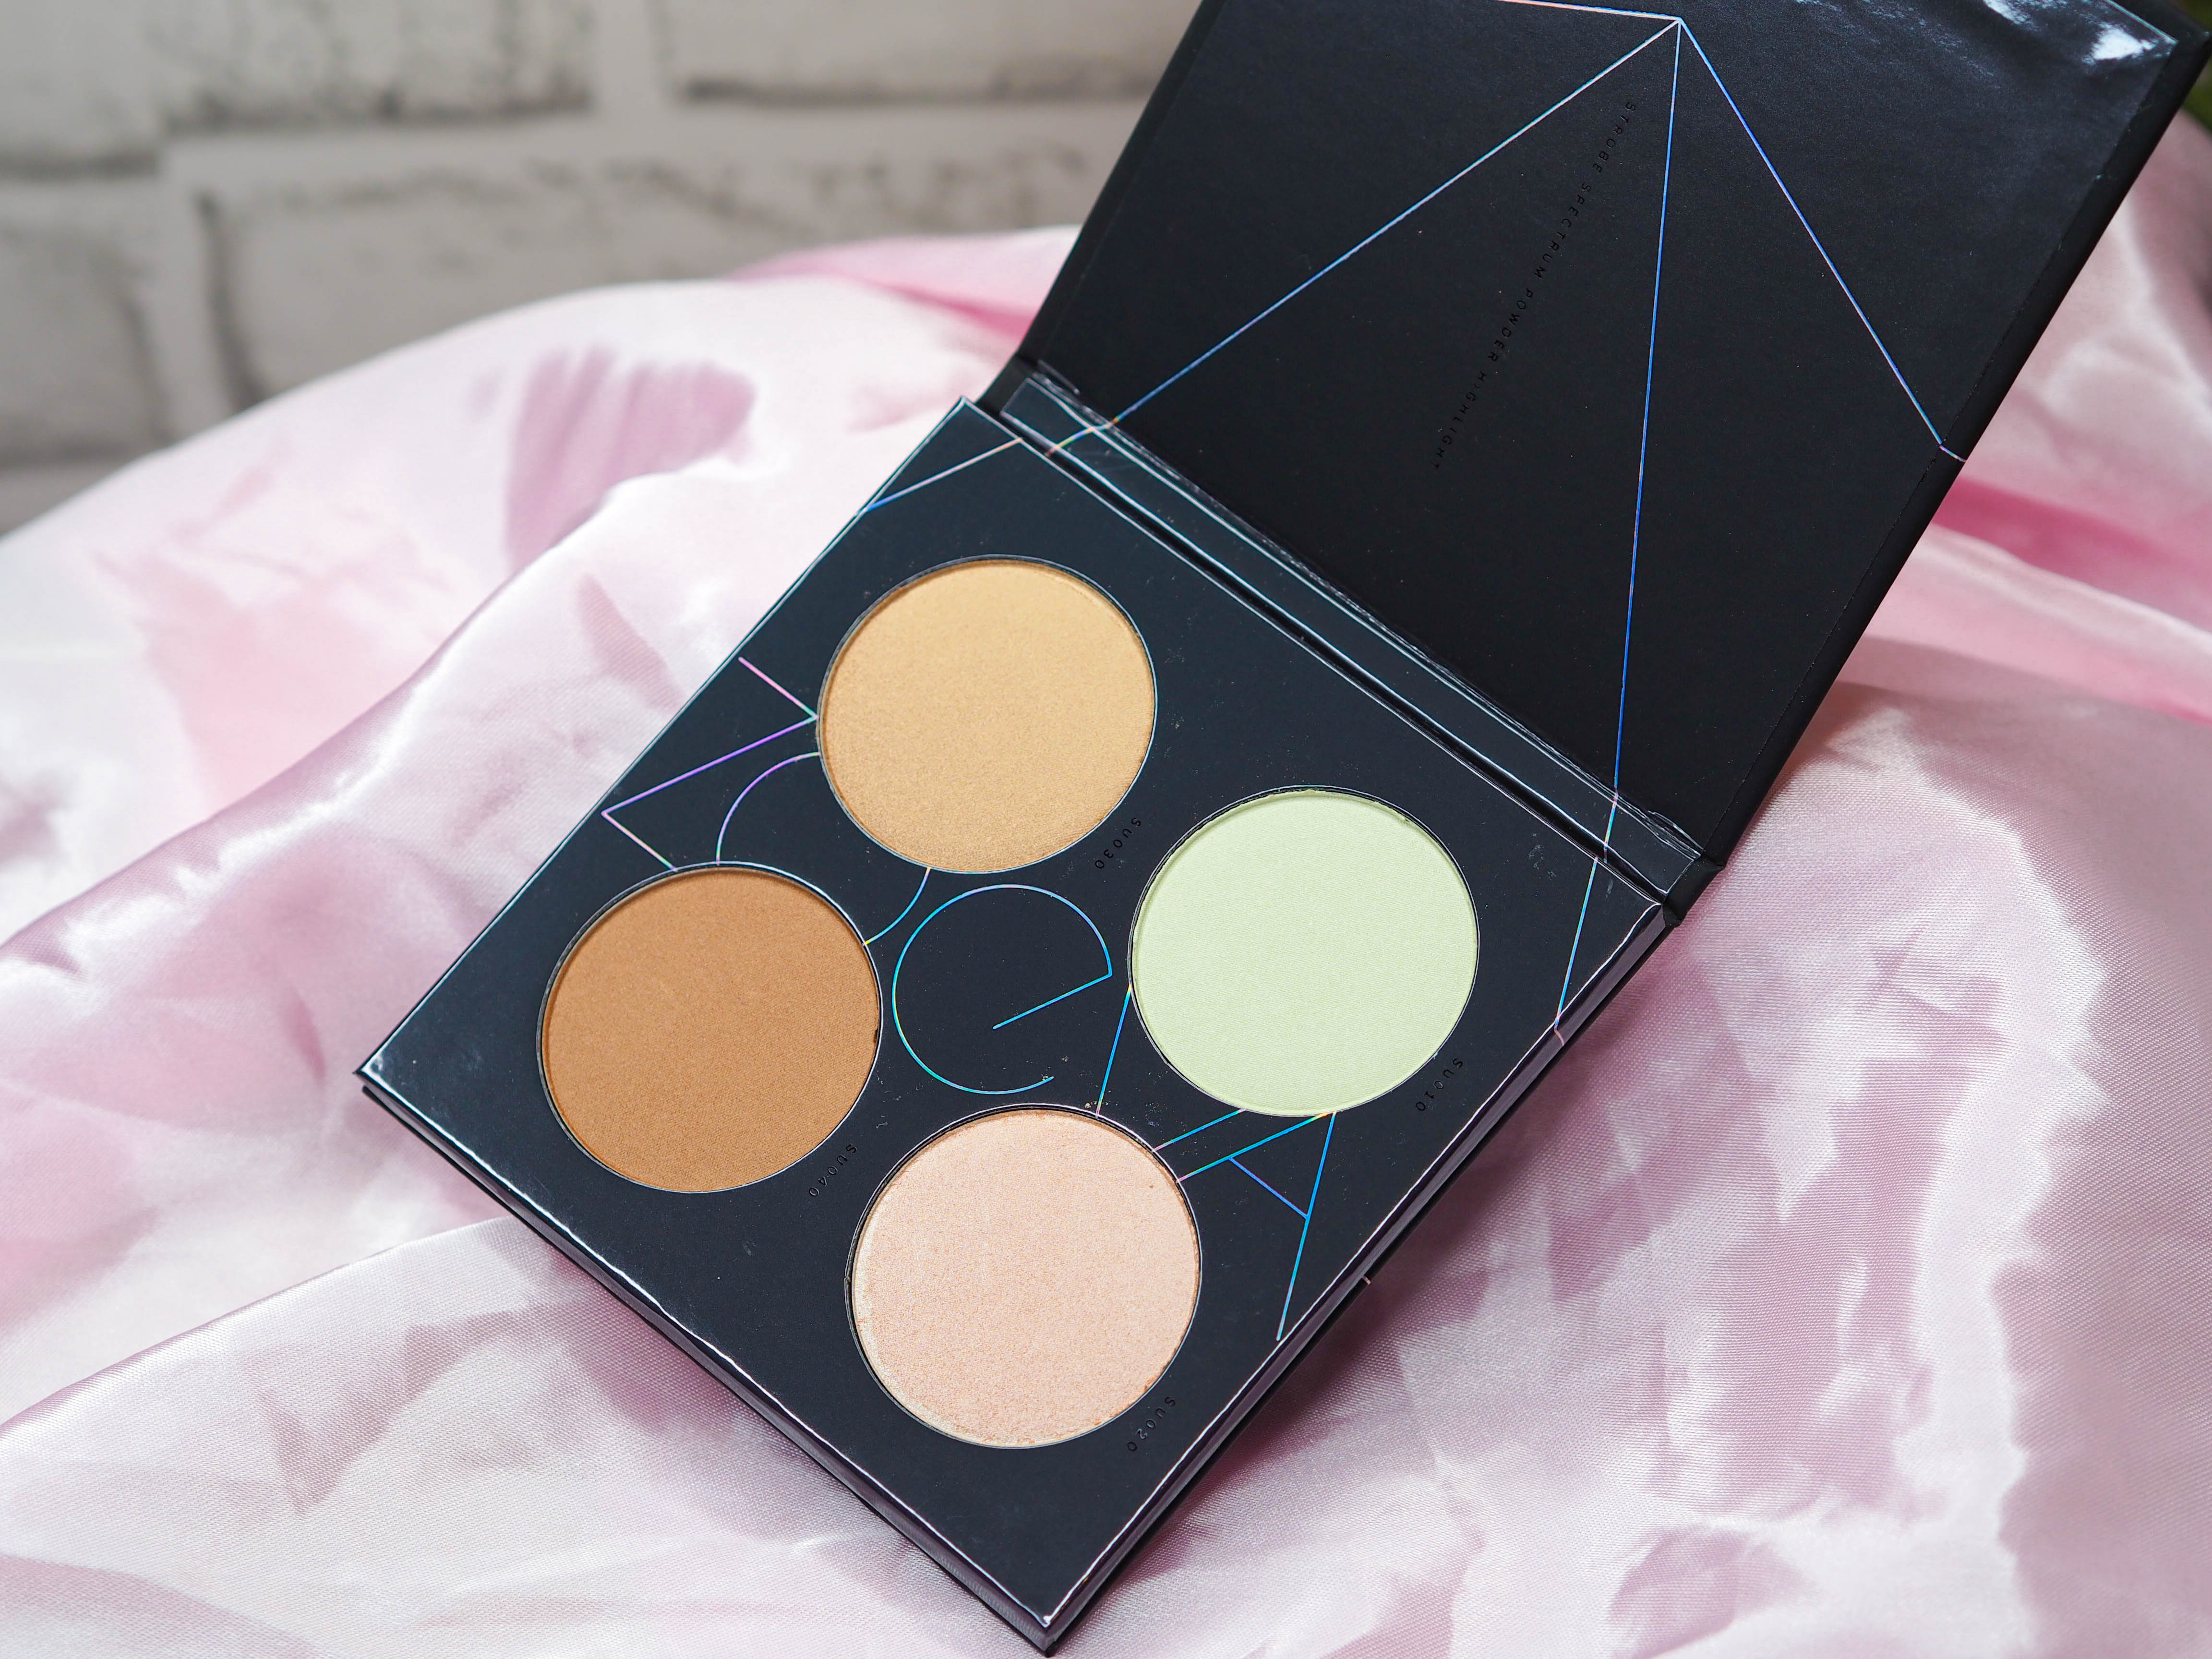 Zoeva Summer Strobe Spectrum Powder Palette